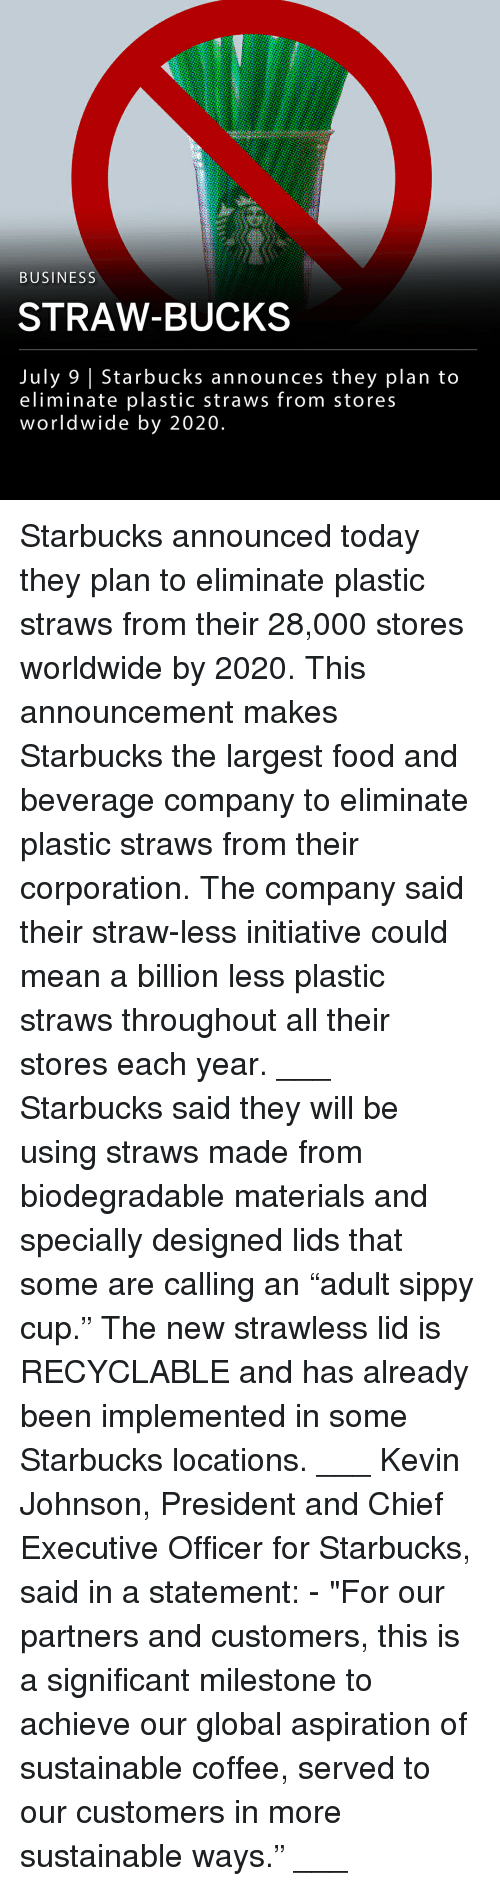 "Food, Memes, and Starbucks: BUSINESS  STRAW-BUCKS  July 9 | Starbucks announces they plan to  eliminate plastic straws from stores  worldwide by 2020 Starbucks announced today they plan to eliminate plastic straws from their 28,000 stores worldwide by 2020. This announcement makes Starbucks the largest food and beverage company to eliminate plastic straws from their corporation. The company said their straw-less initiative could mean a billion less plastic straws throughout all their stores each year. ___ Starbucks said they will be using straws made from biodegradable materials and specially designed lids that some are calling an ""adult sippy cup."" The new strawless lid is RECYCLABLE and has already been implemented in some Starbucks locations. ___ Kevin Johnson, President and Chief Executive Officer for Starbucks, said in a statement: - ""For our partners and customers, this is a significant milestone to achieve our global aspiration of sustainable coffee, served to our customers in more sustainable ways."" ___"